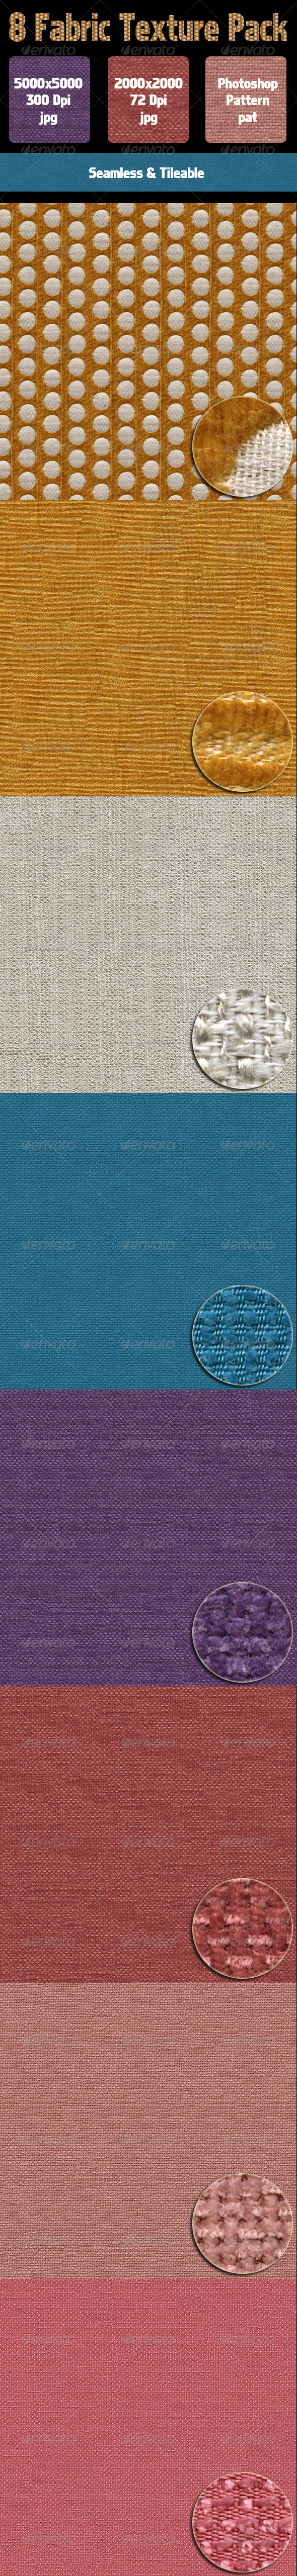 GraphicRiver 8 Fabric Texture Pack 4527718